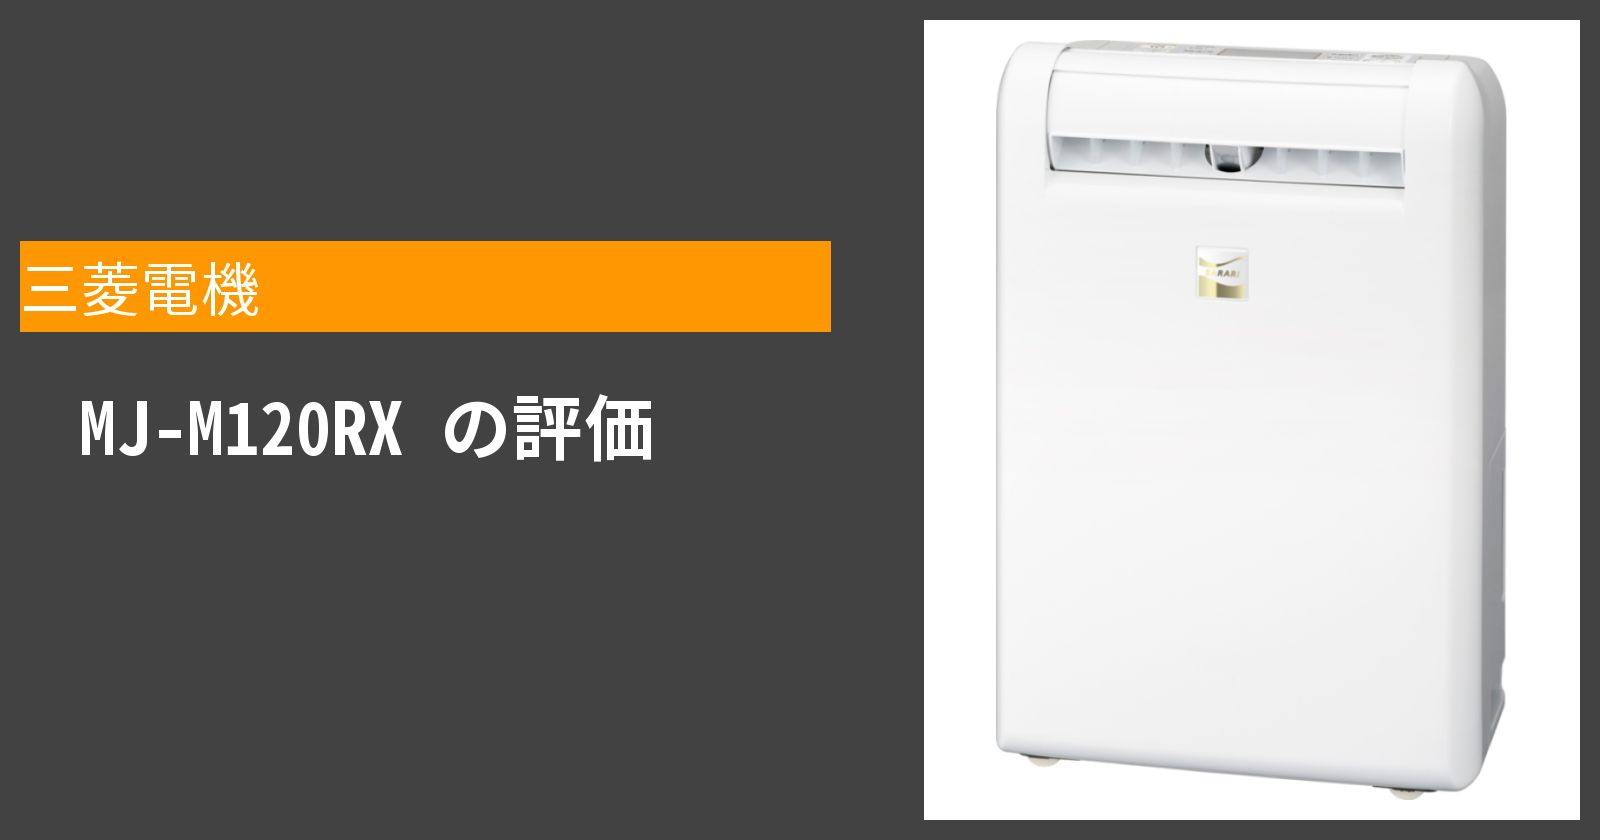 MJ-M120RXを徹底評価